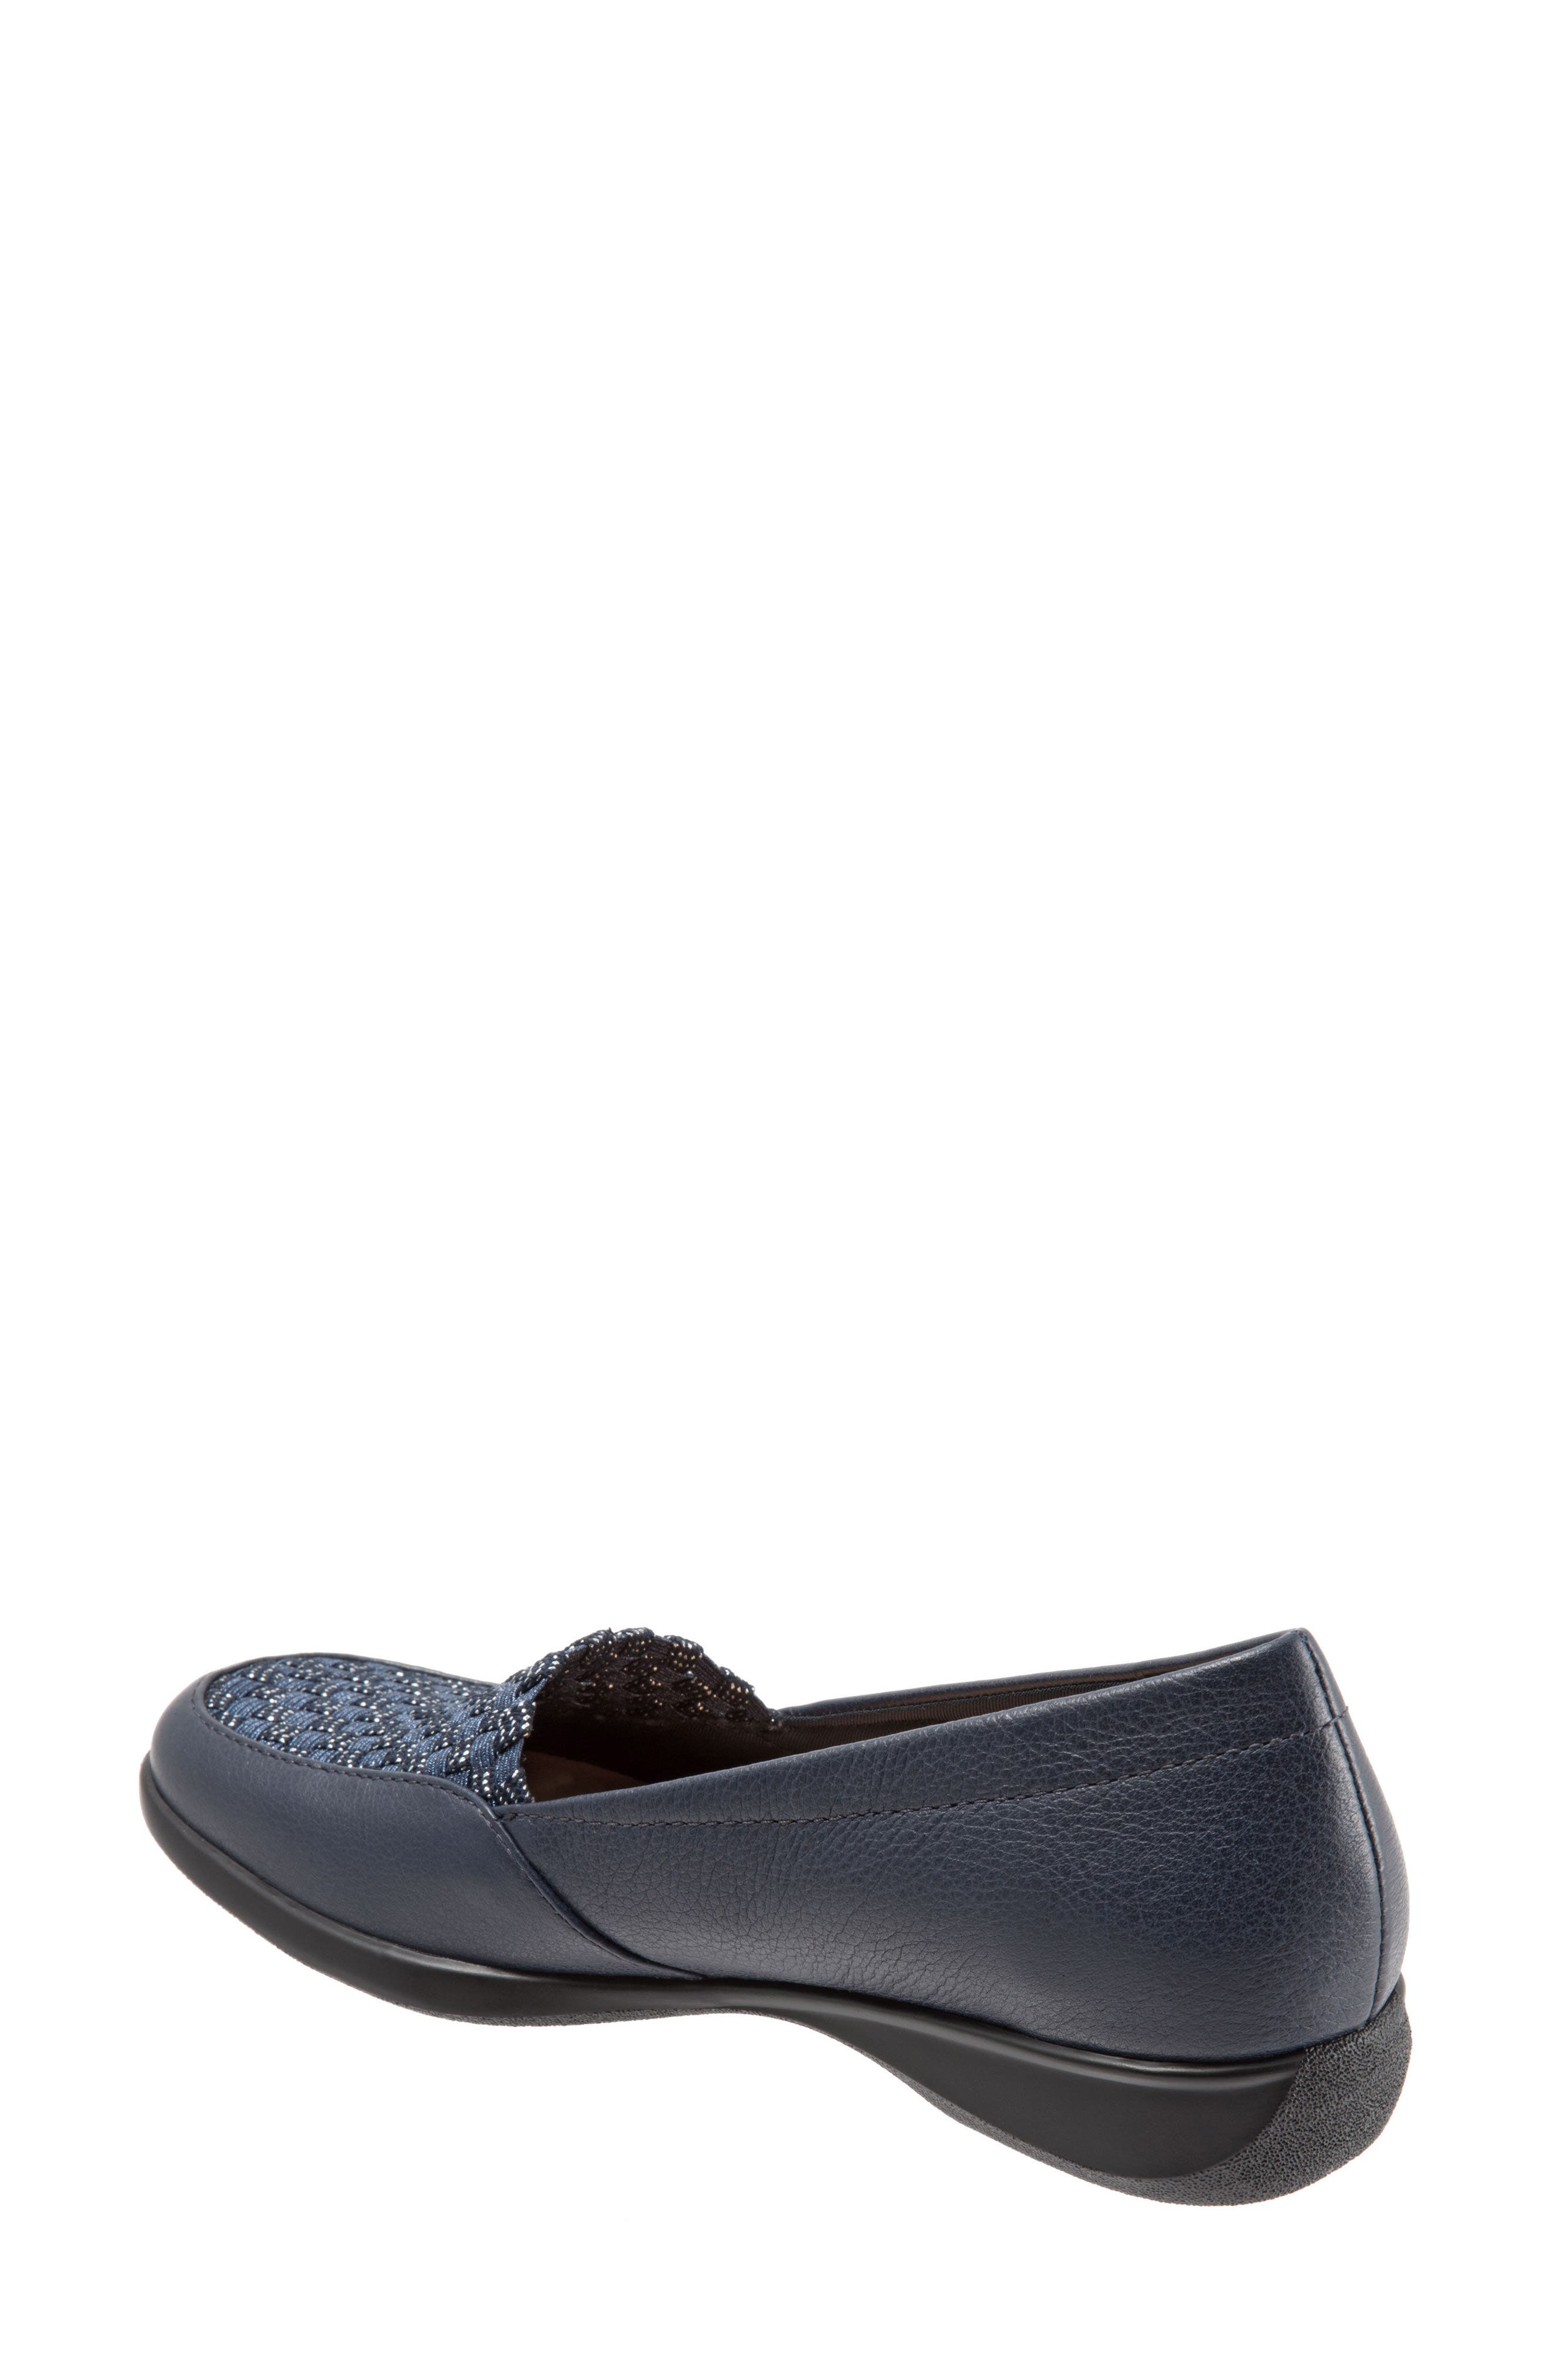 Jenkins Loafer Flat,                             Alternate thumbnail 2, color,                             Navy Leather